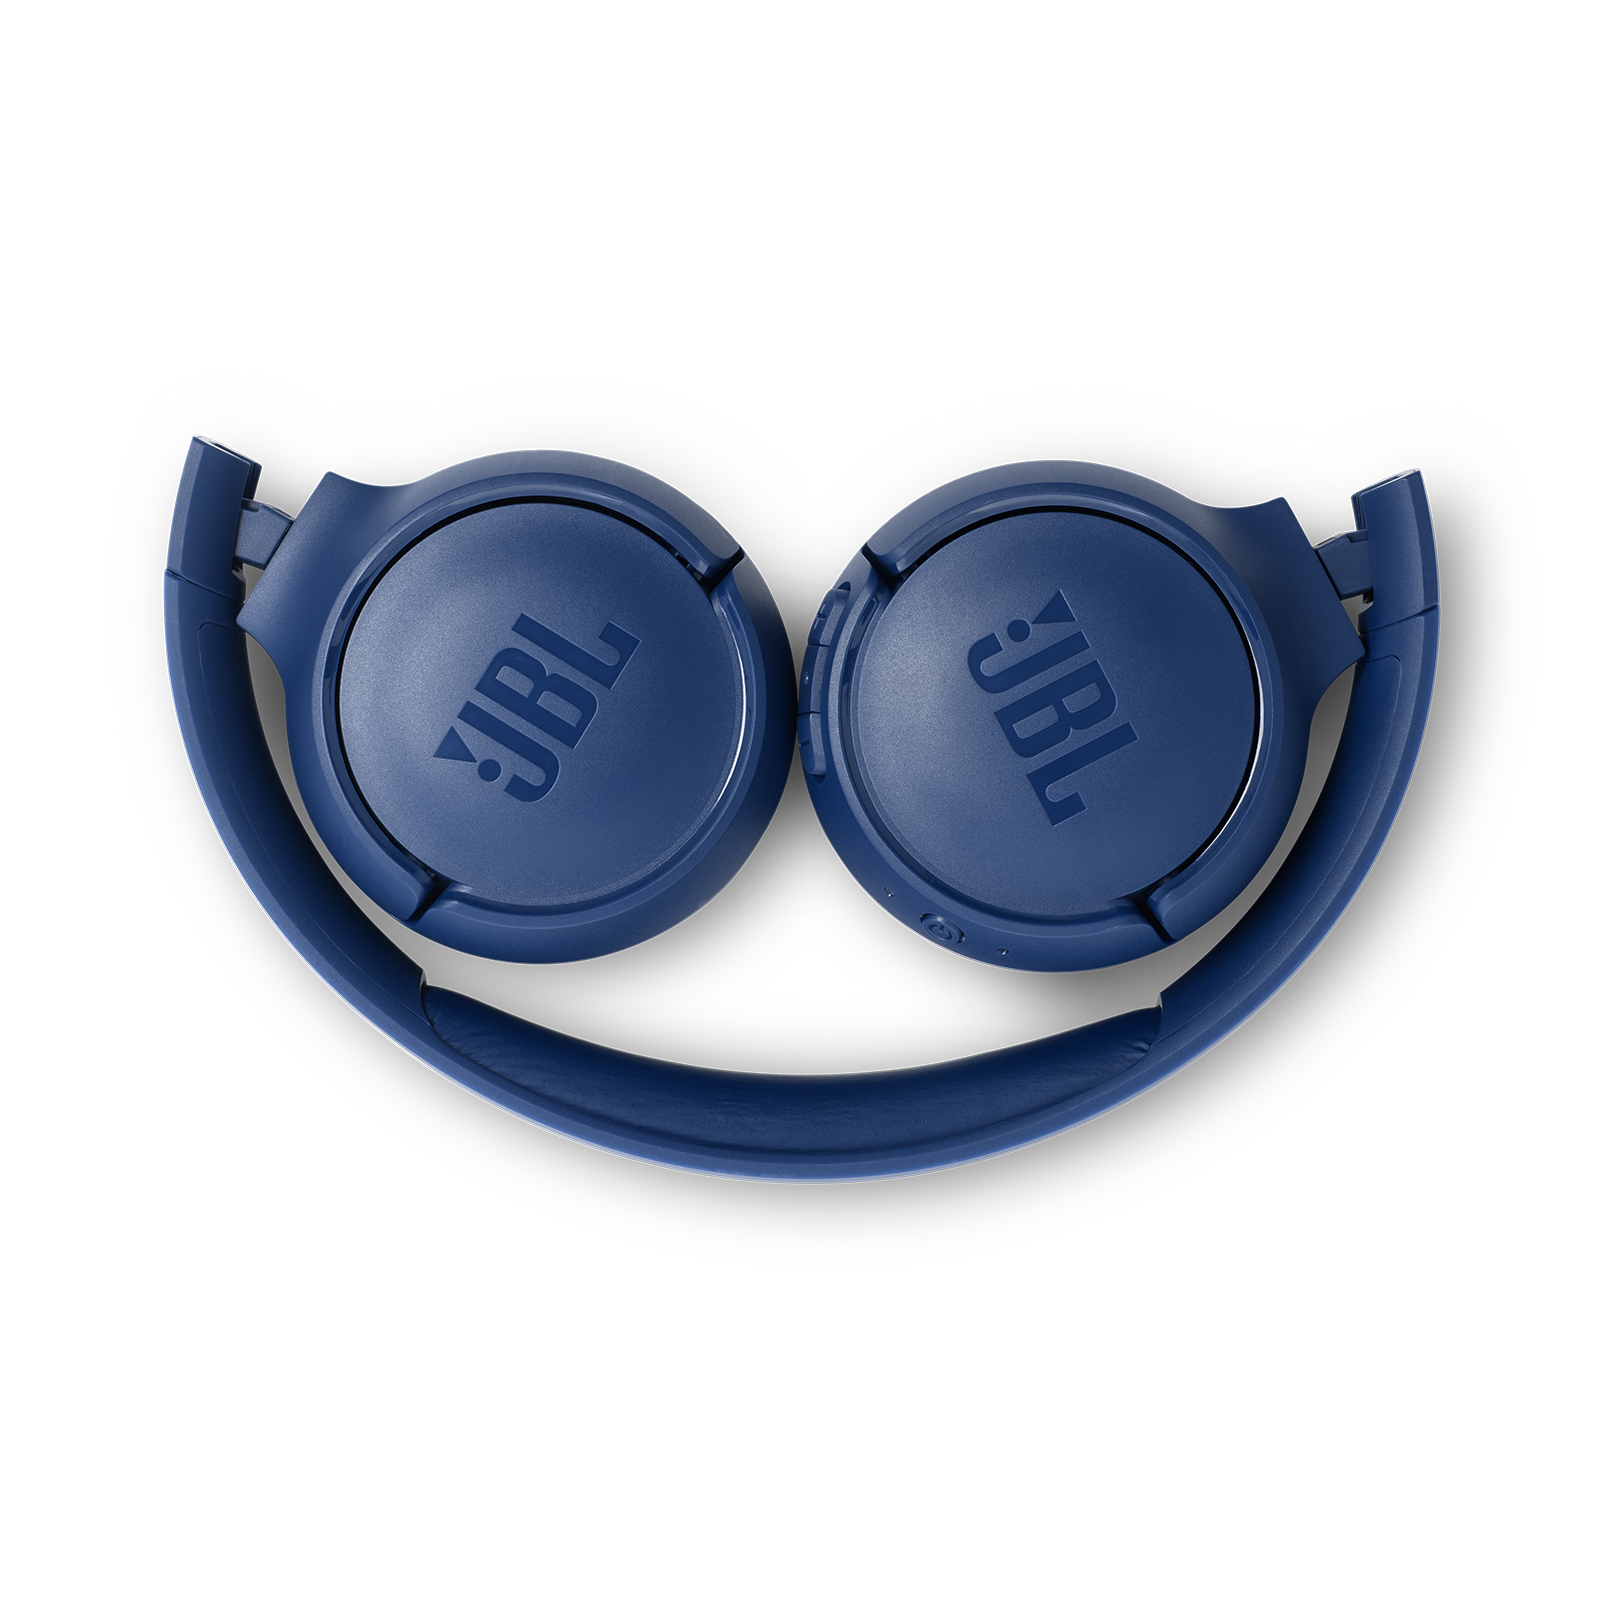 JBL TUNE 560BT - Blue - Wireless on-ear headphones - Detailshot 3